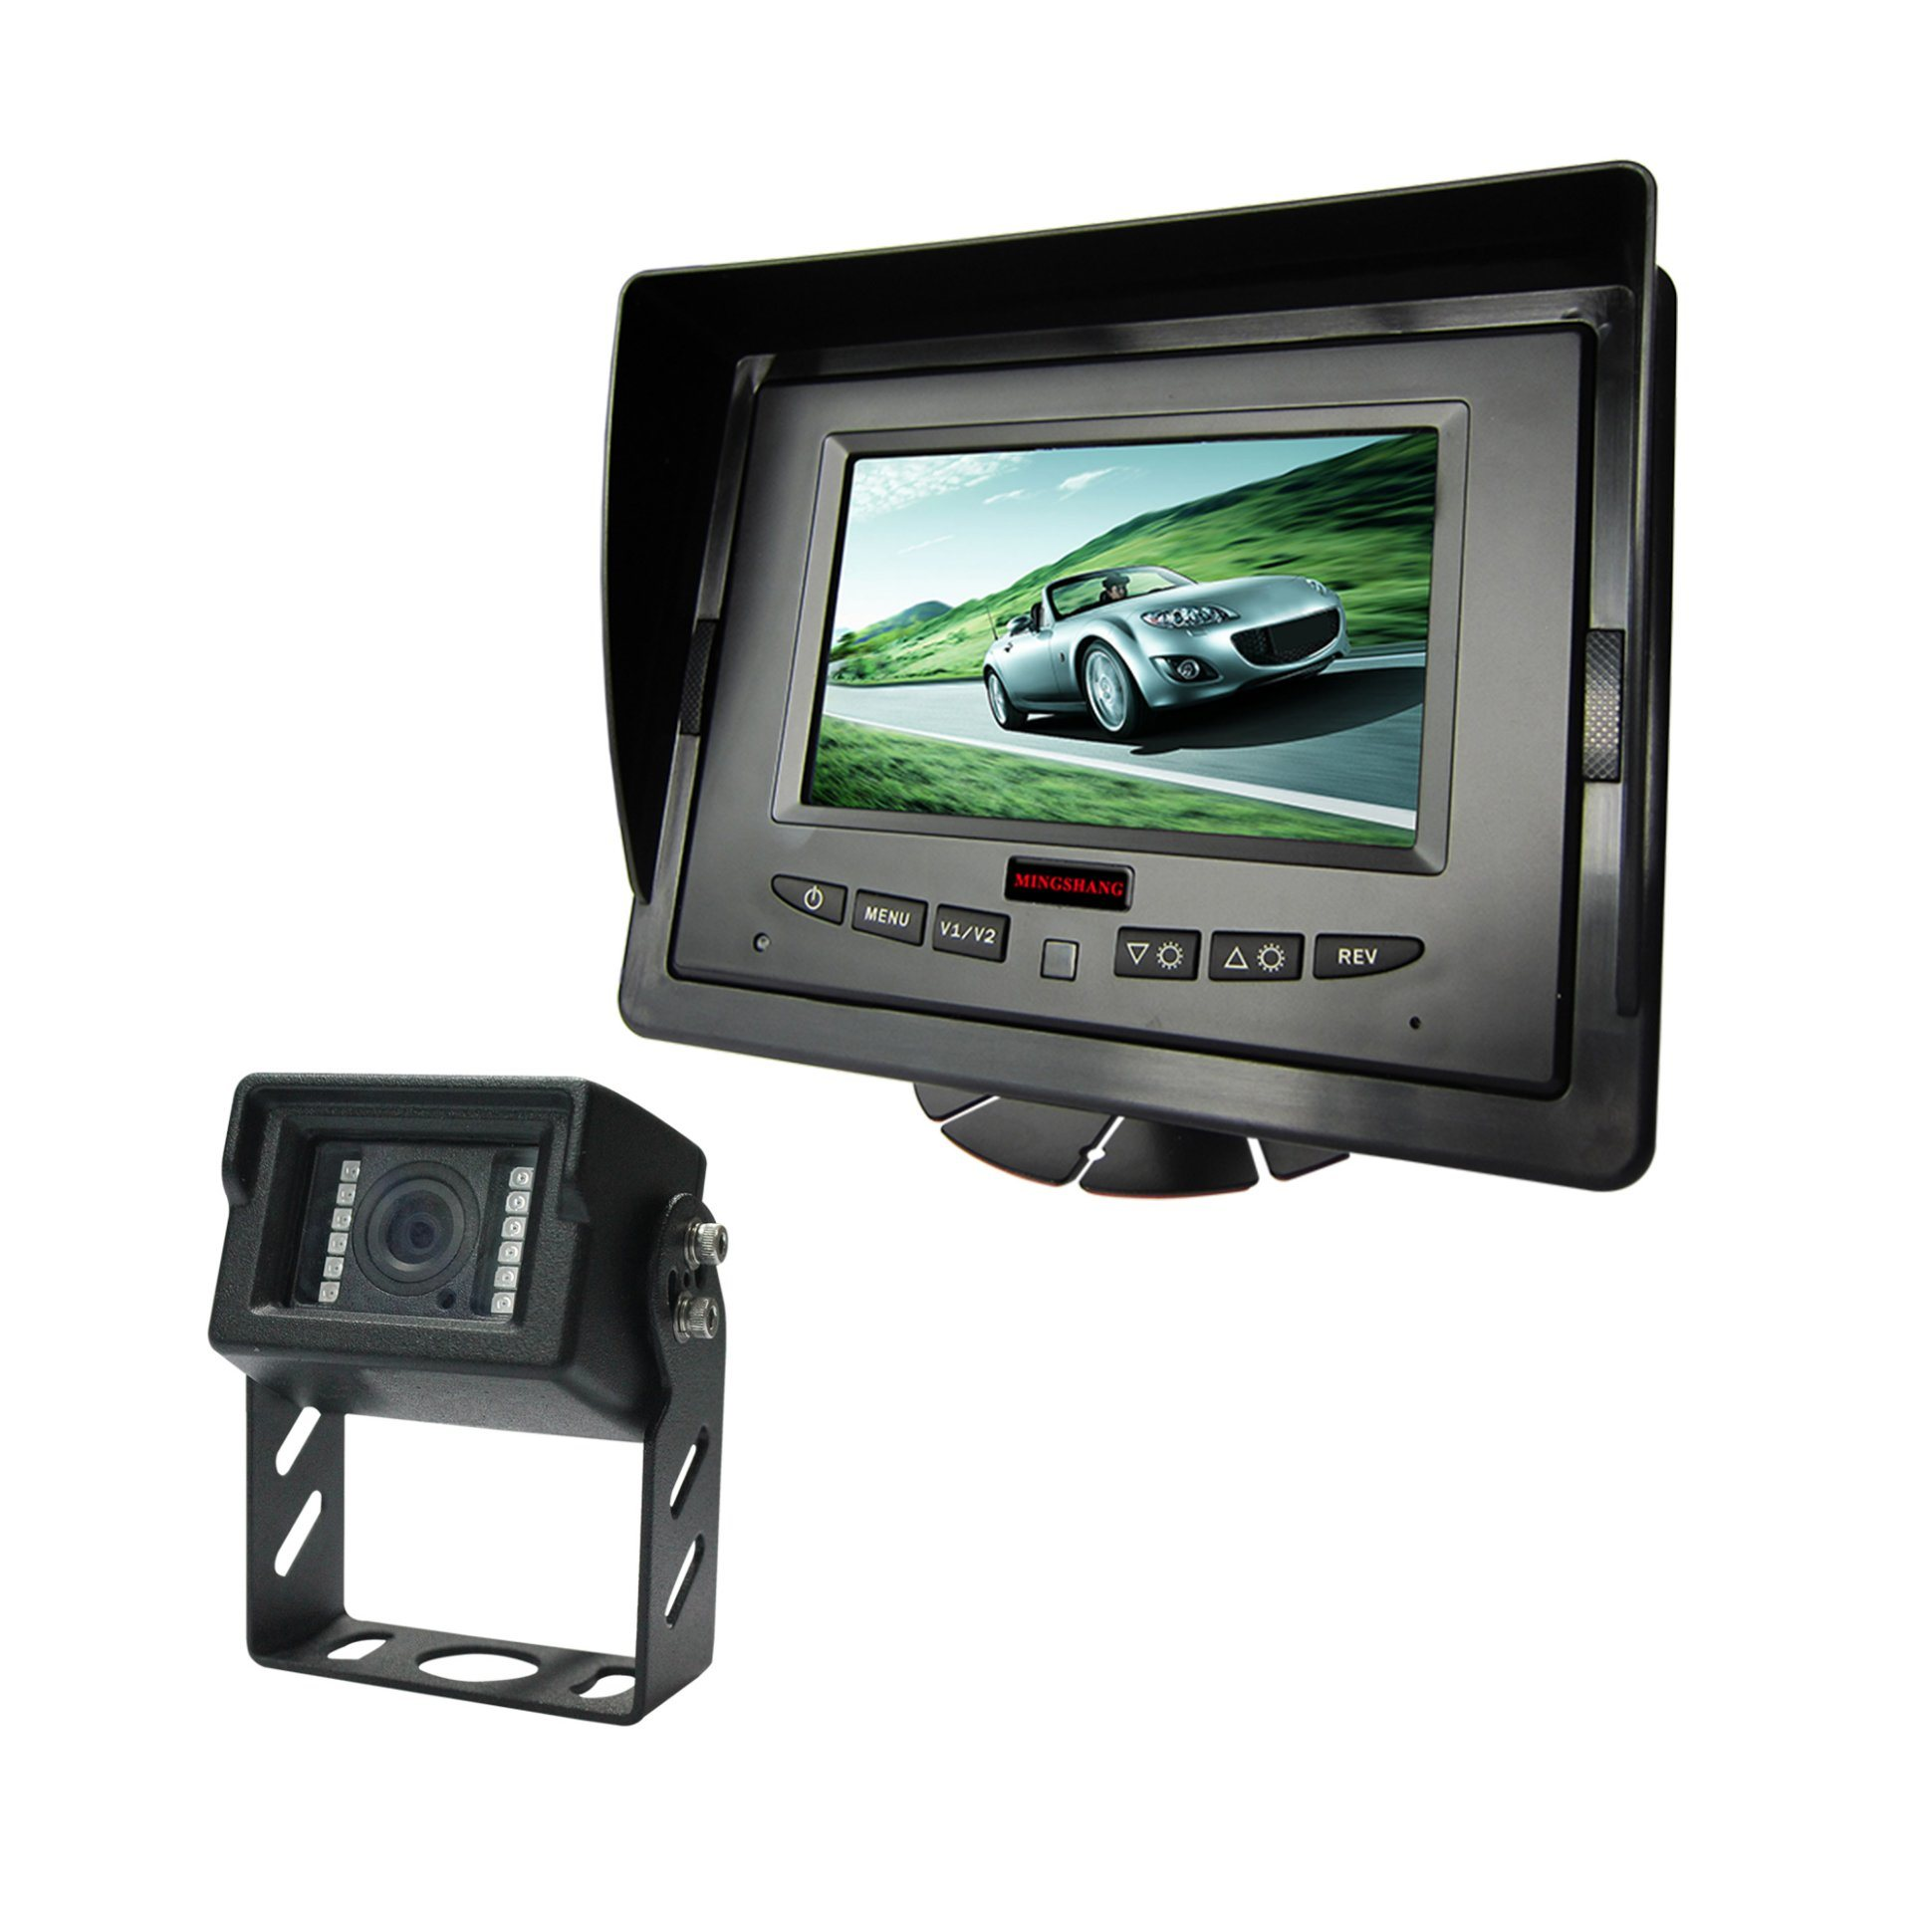 5 Inch Digital LCD Car Rear View Backup Monitor for Bus, Trucks